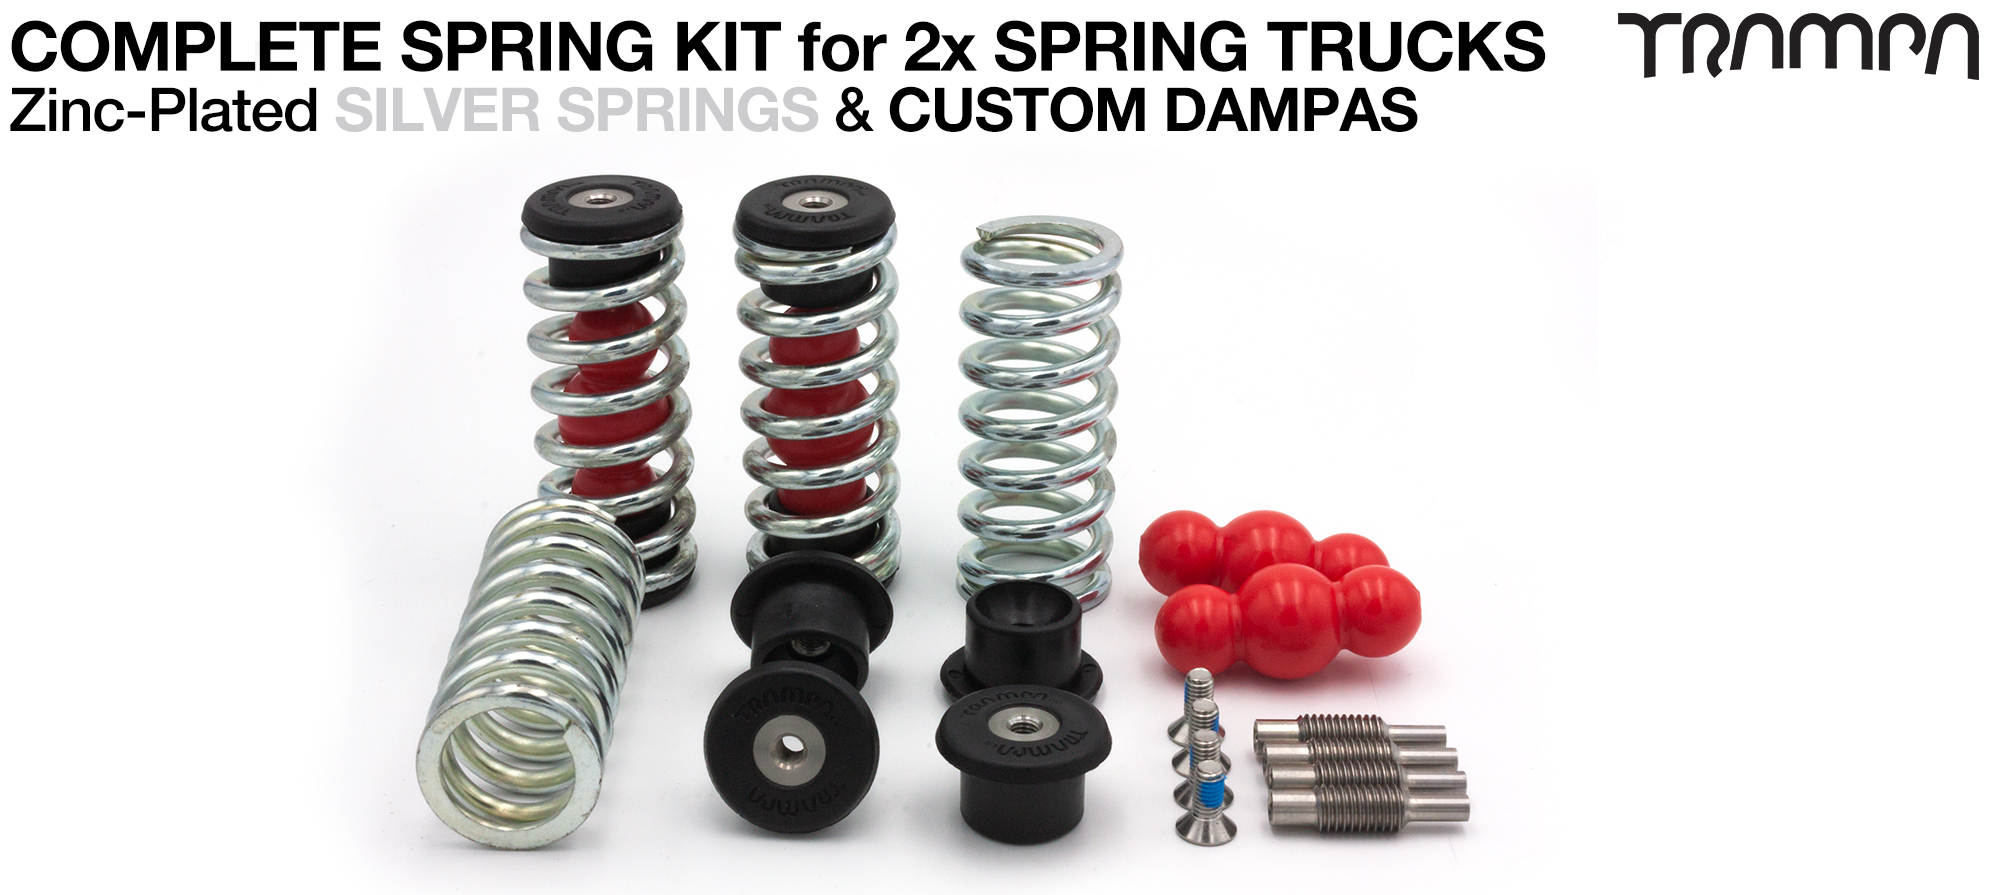 Complete Spring kit for 1x Board = 4x SILVER Springs 4x Dampa 8x Spring Retainers 4x Spring Adjuster & 4 M5x12mm Countersunk Bolt